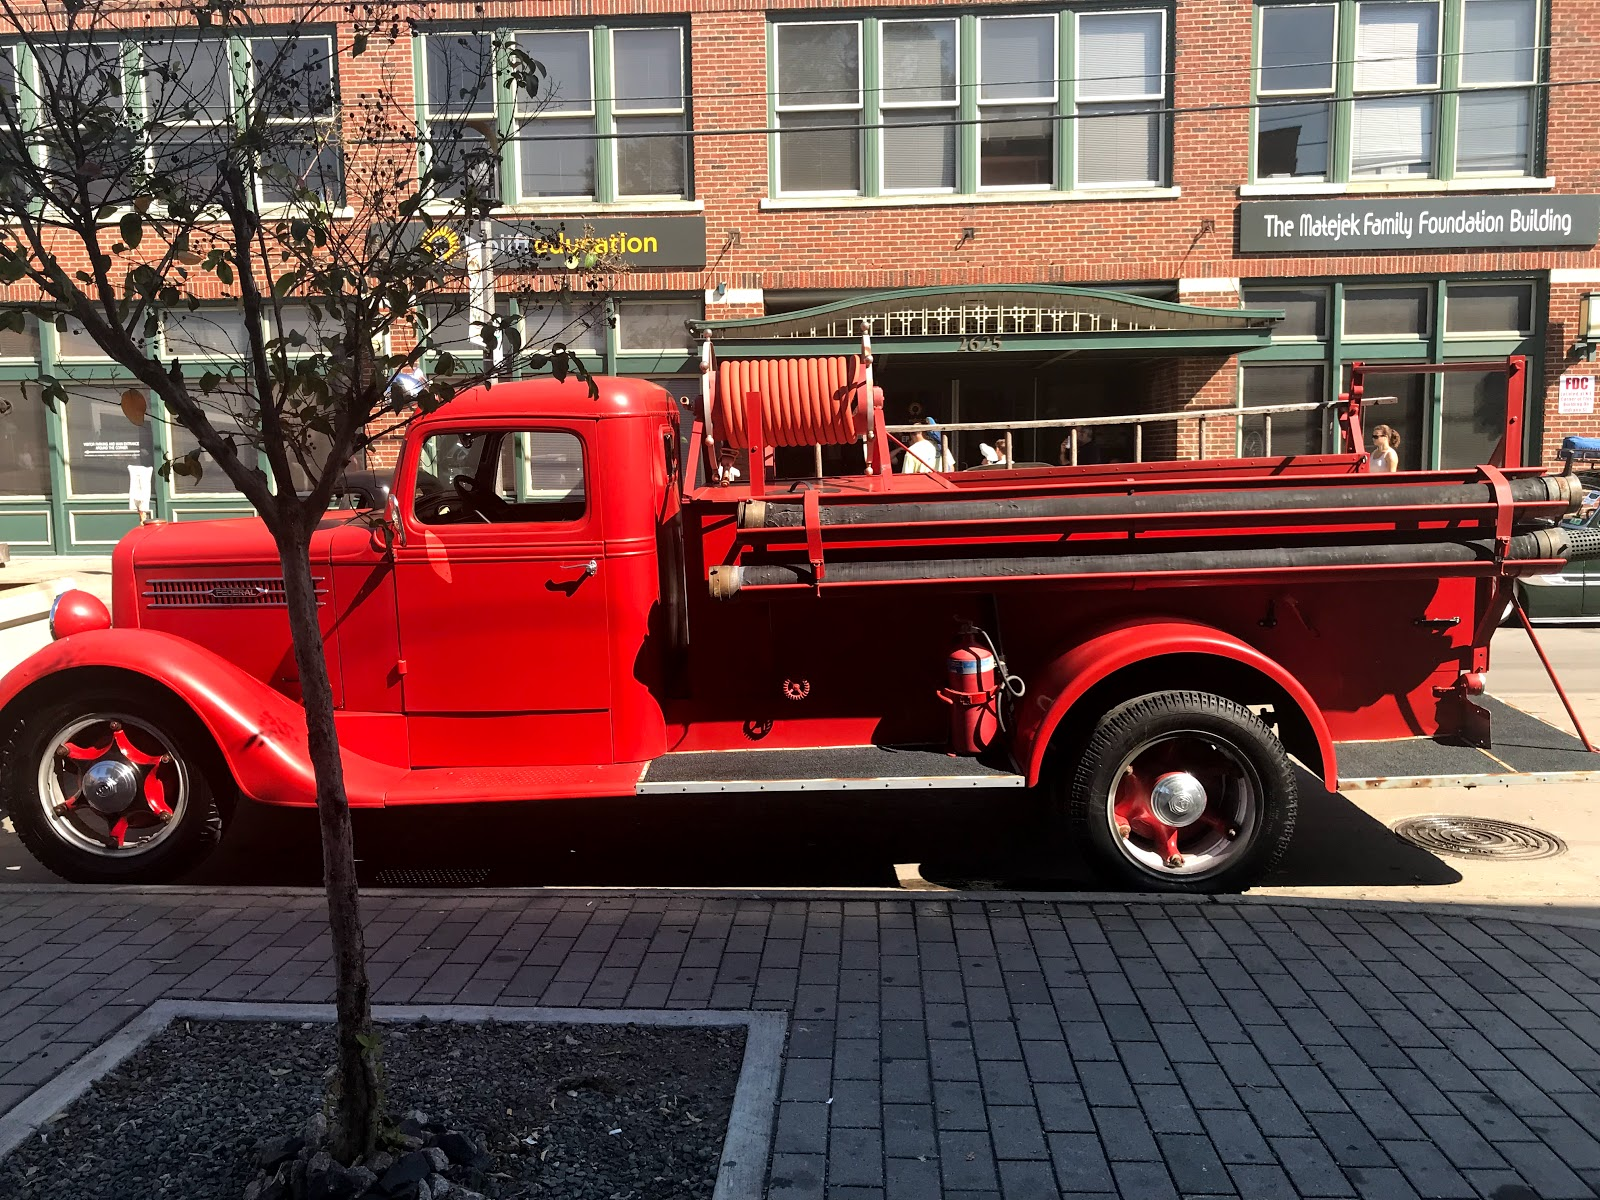 Image: Red truck at the Dallas Car ShoThe Invasion Car Show Deep Ellum Dallas Texasw in Deep Ellum. Seen On Bits and Babbles: